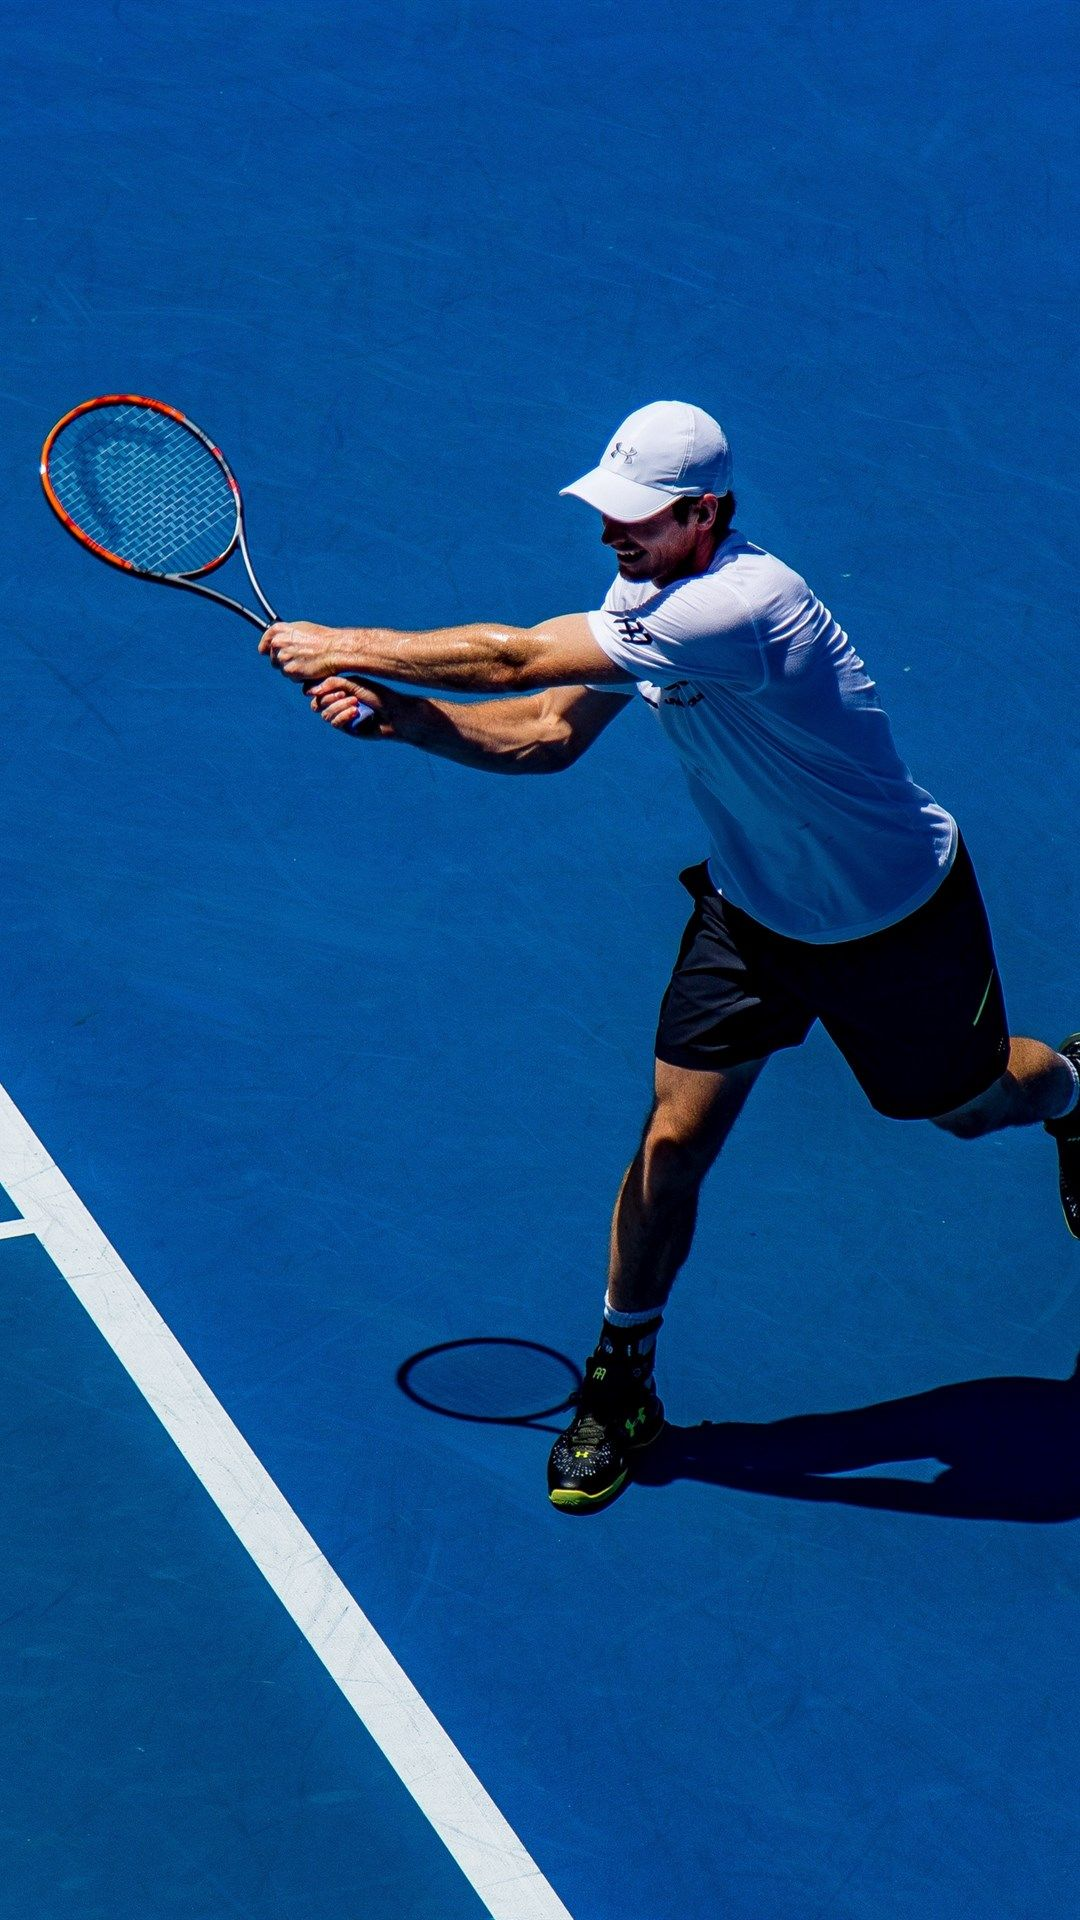 Pin By Rilkerainer On Celebridades In 2020 Tennis Sports Wallpapers Tennis Players